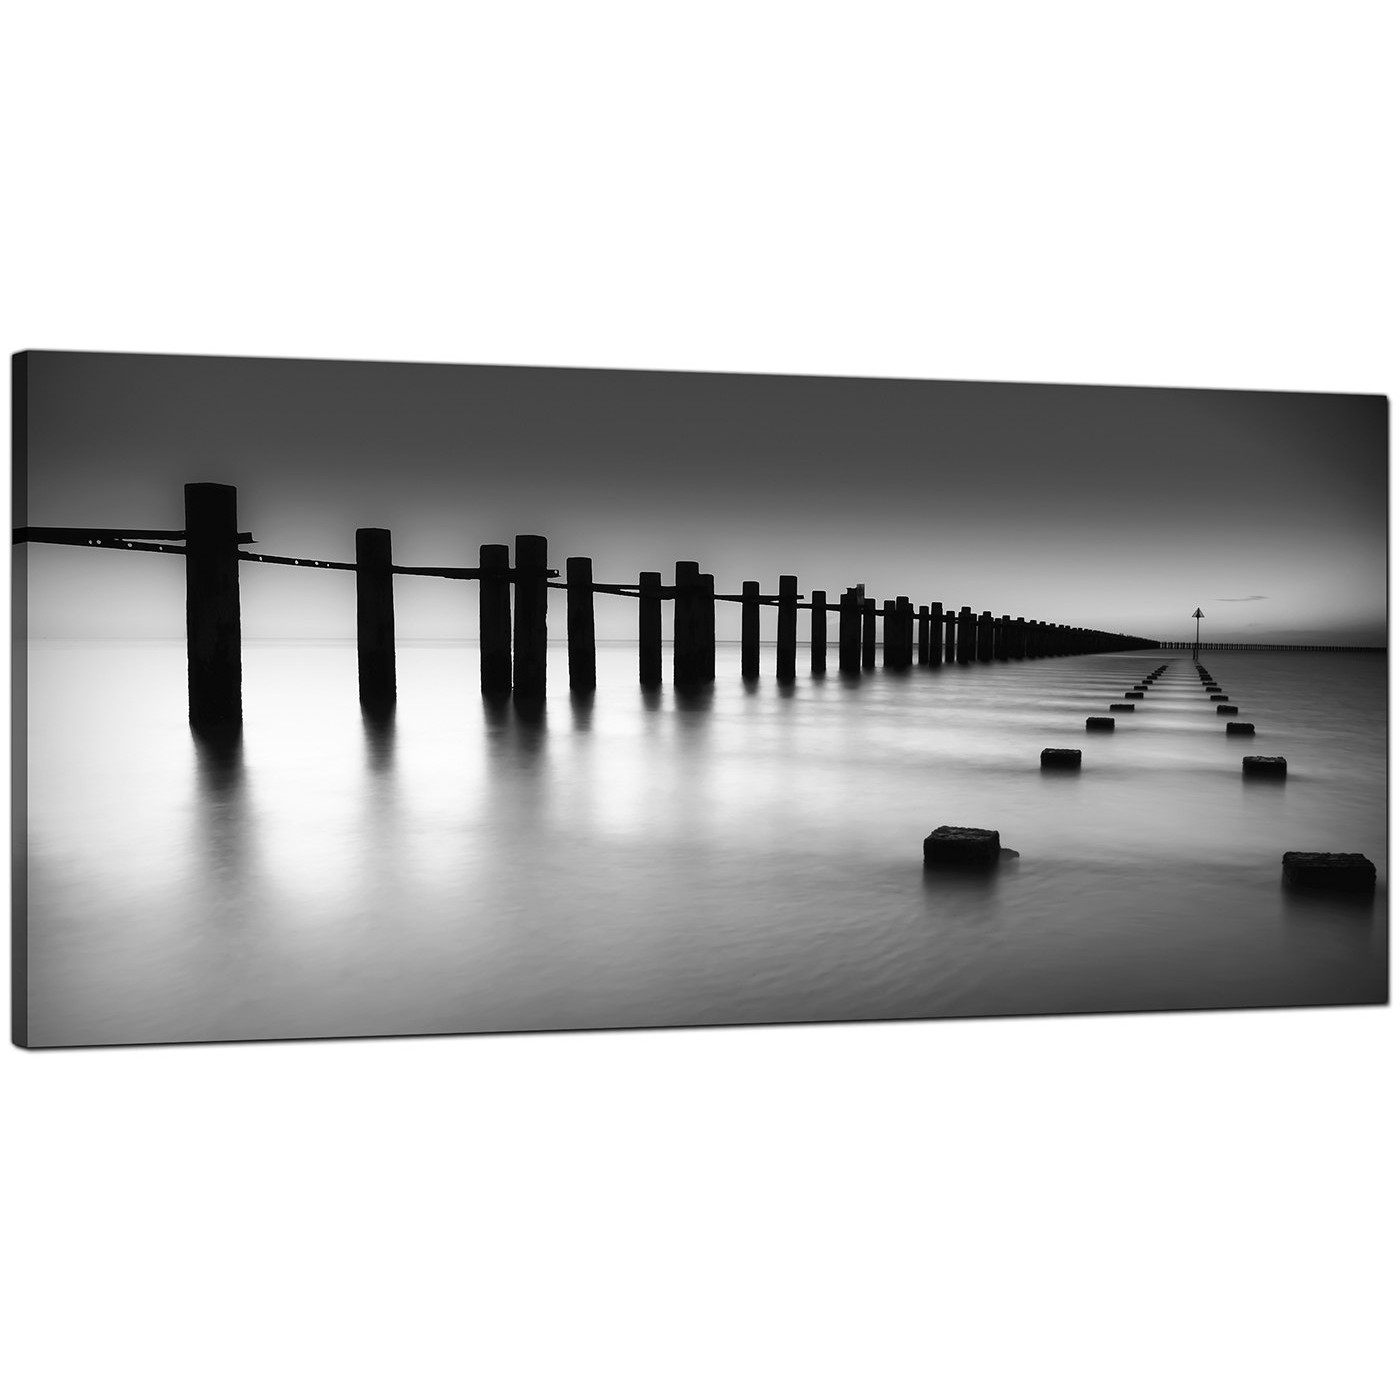 Modern Black And White Canvas Art Of The Sea With Regard To Current Black And White Photography Canvas Wall Art (View 10 of 15)